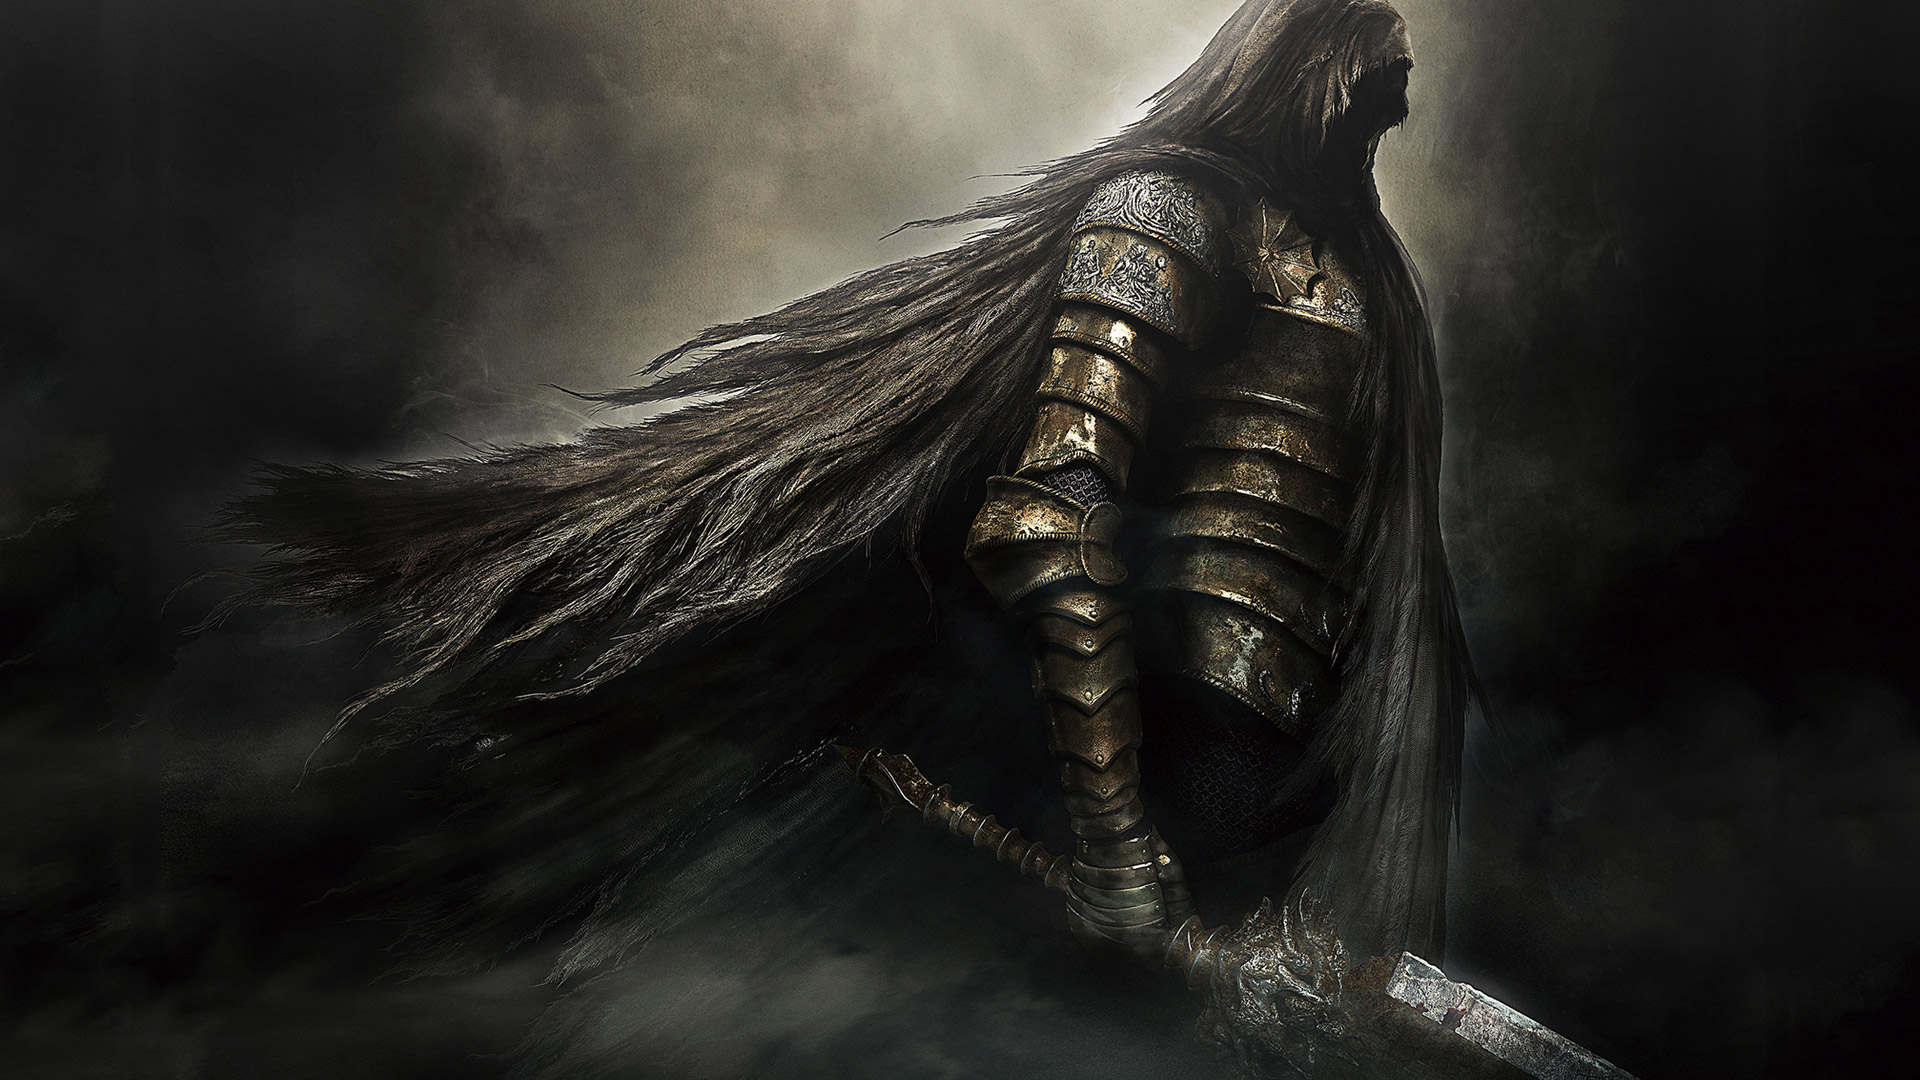 Dark Souls II Wallpaper in 1920x1080 1920x1080